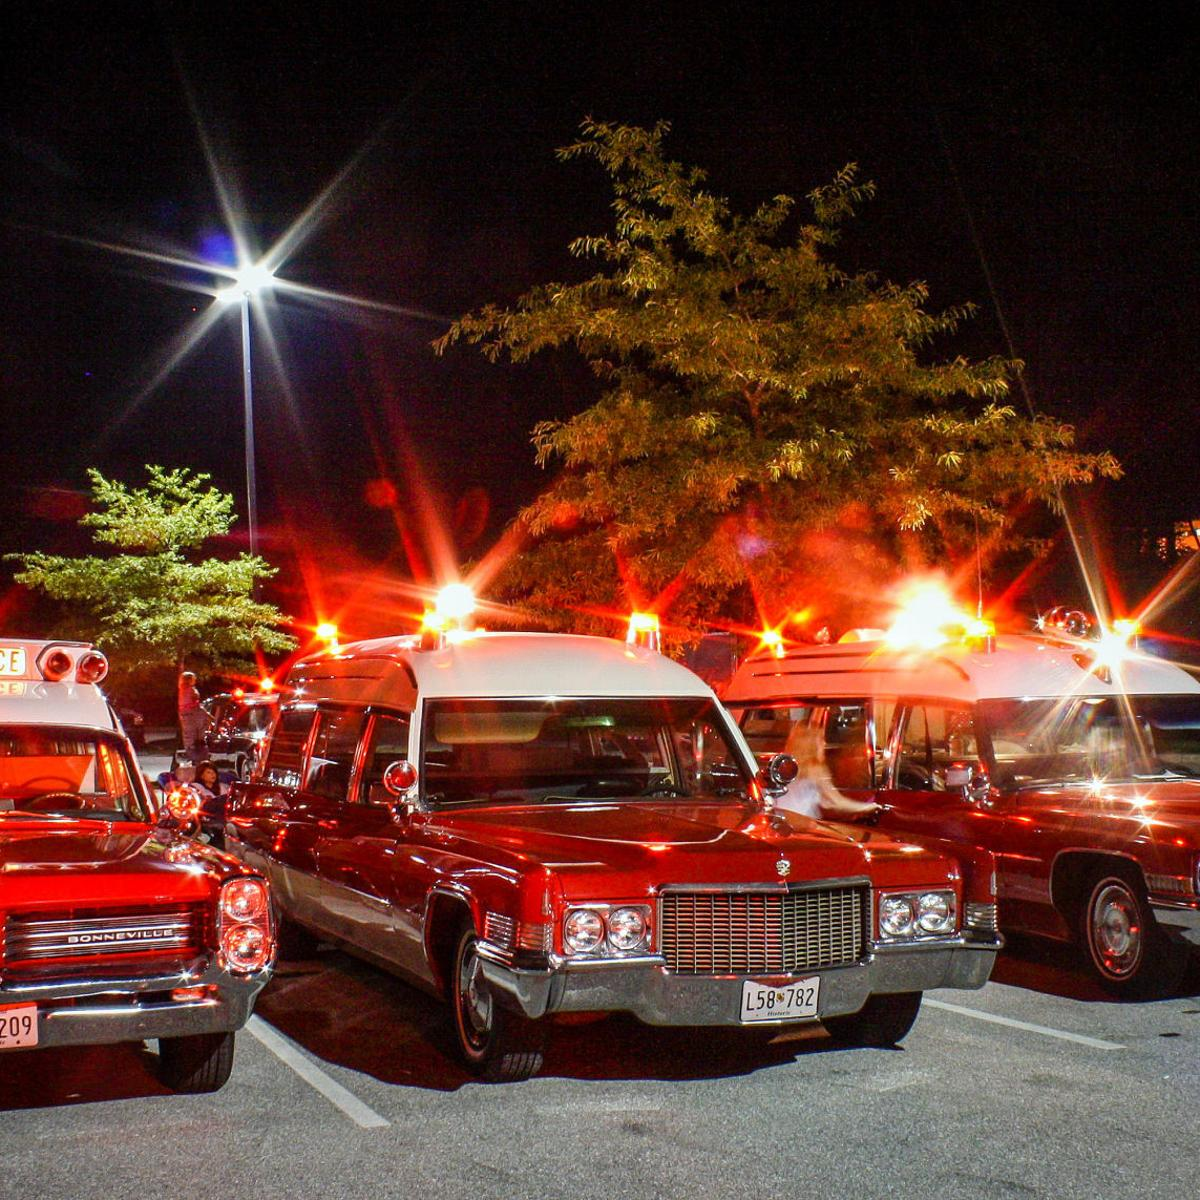 Vintage ambulances, hearses, funeral limousines coming to